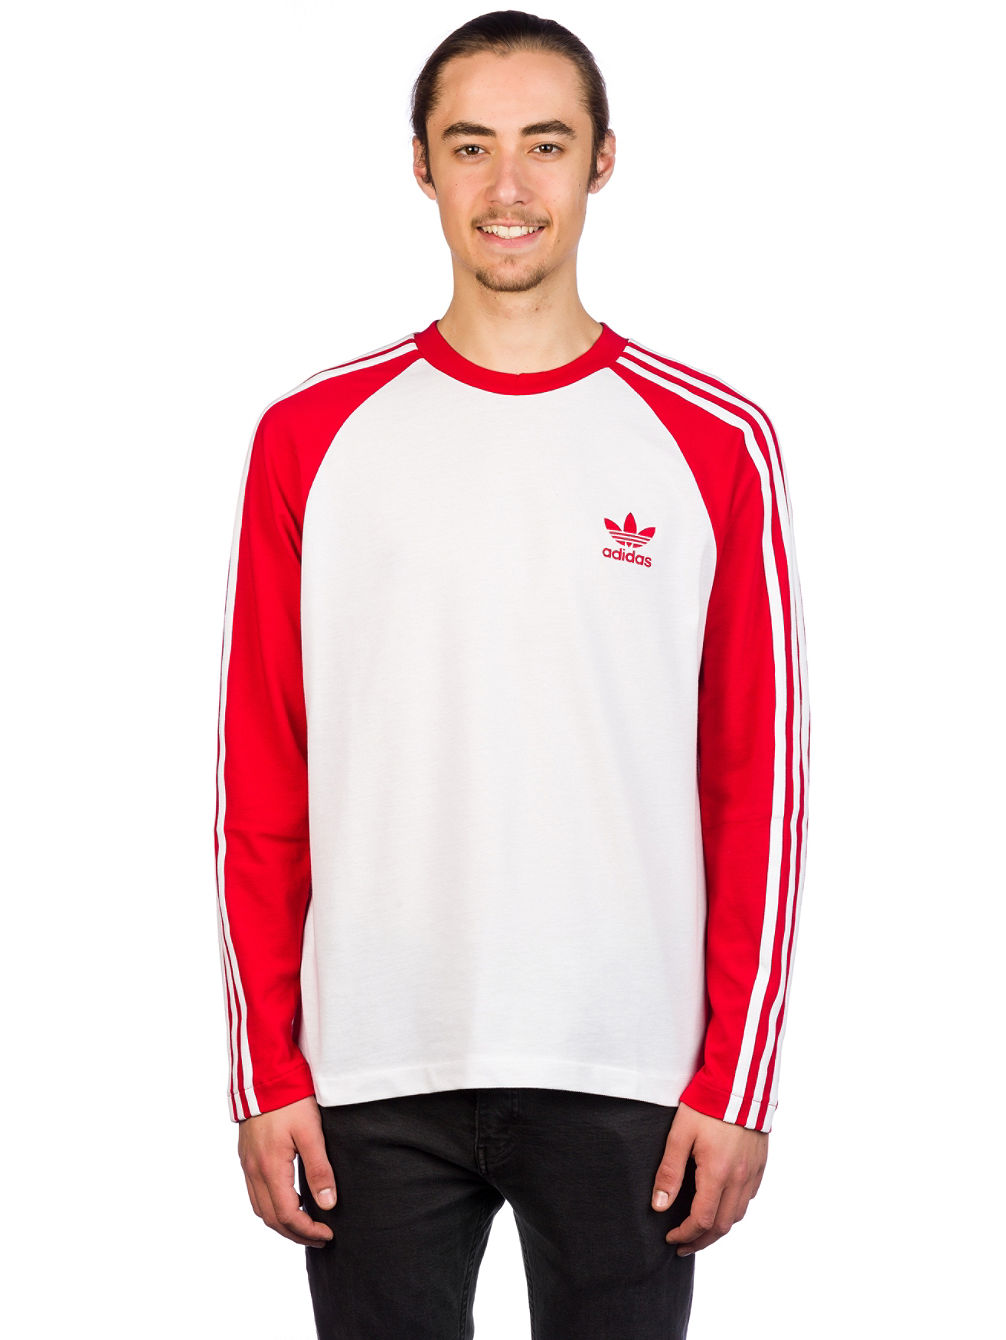 3-Stripes Camiseta